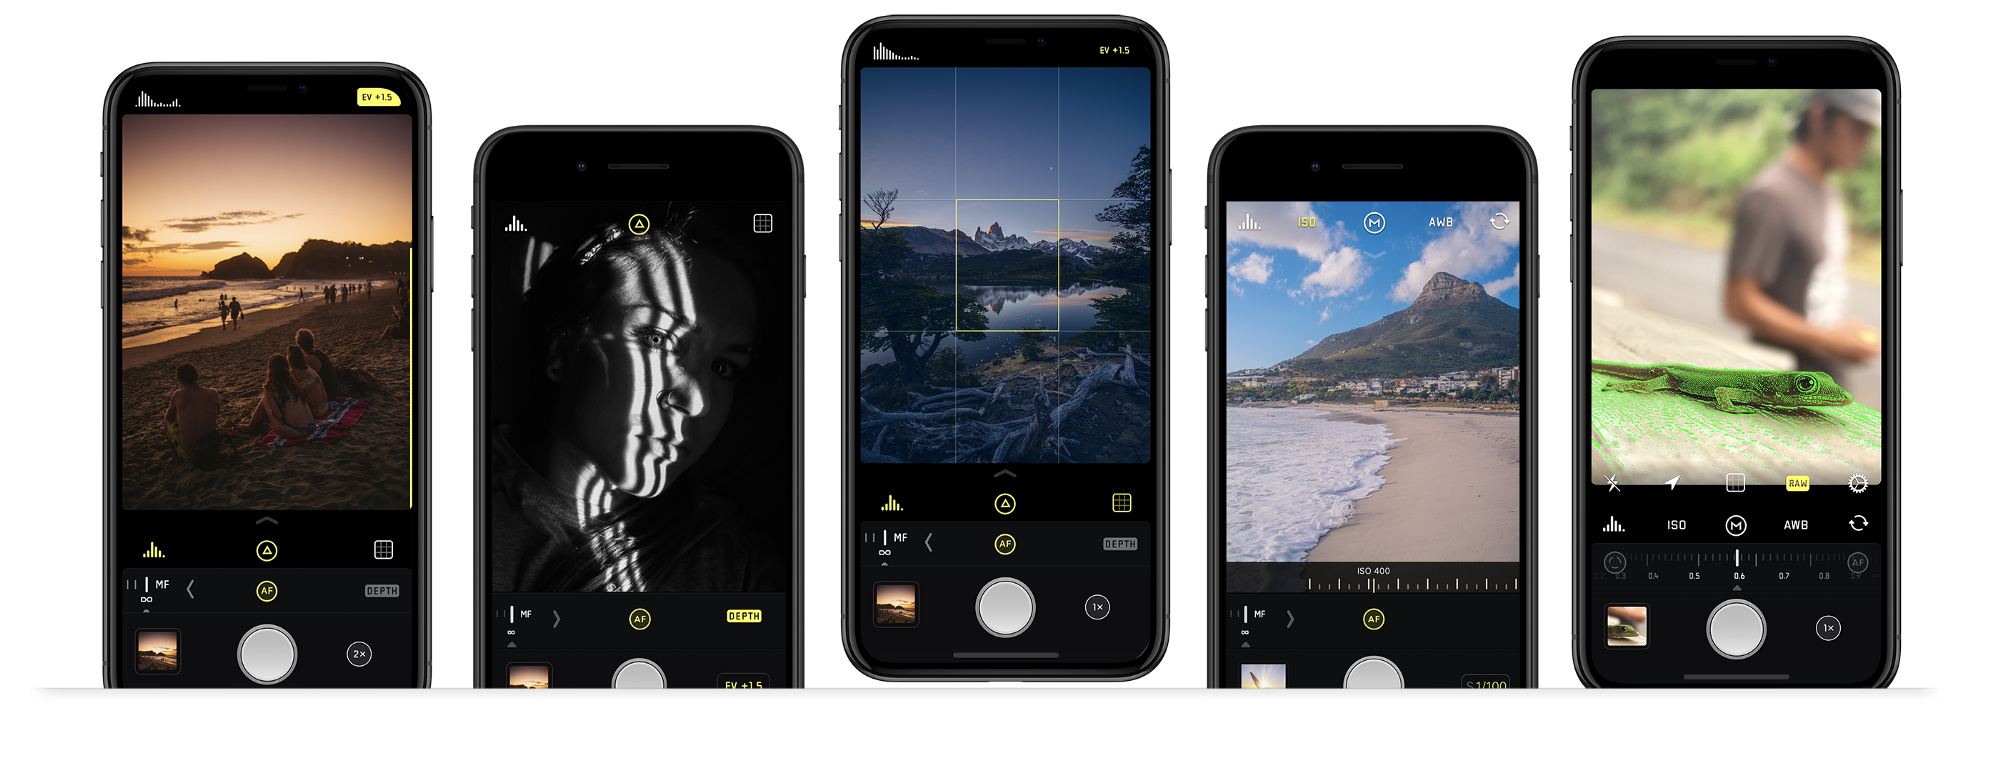 camera apps for iphone halide 1 5 a app made for iphone x halide 7153